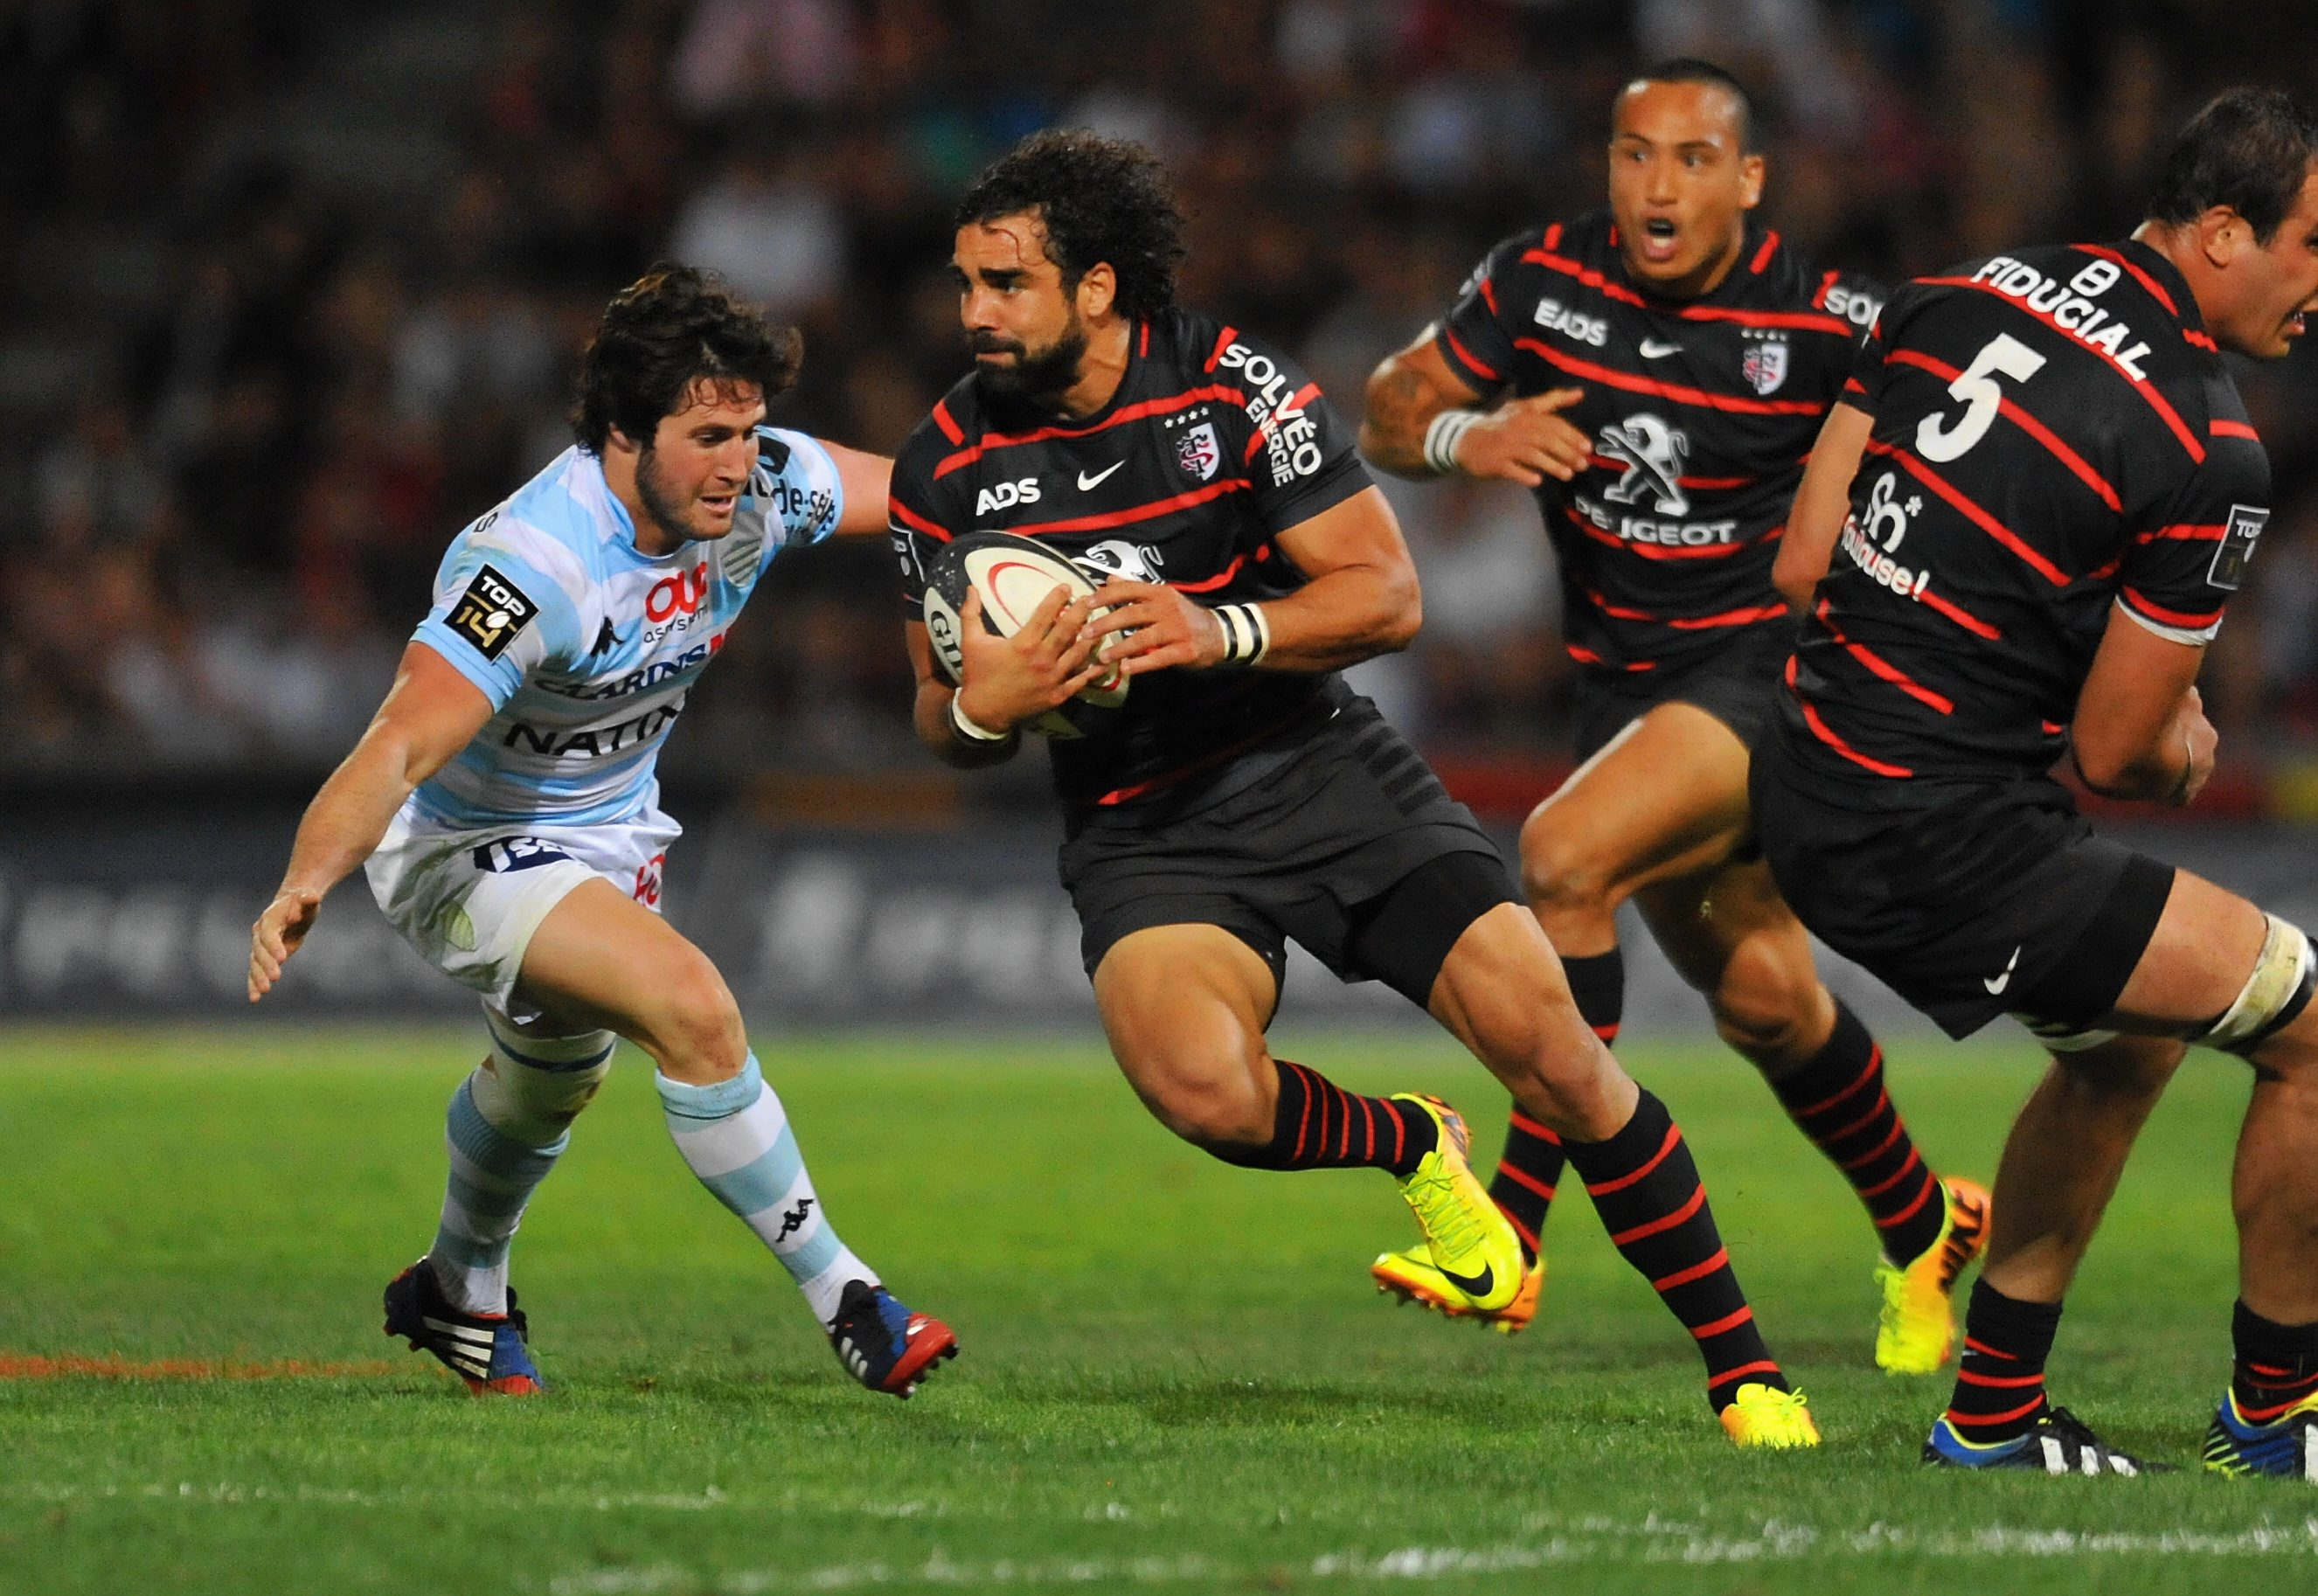 rugby top 14 match bayonne vs toulouse en direct live streaming ibuzz365. Black Bedroom Furniture Sets. Home Design Ideas